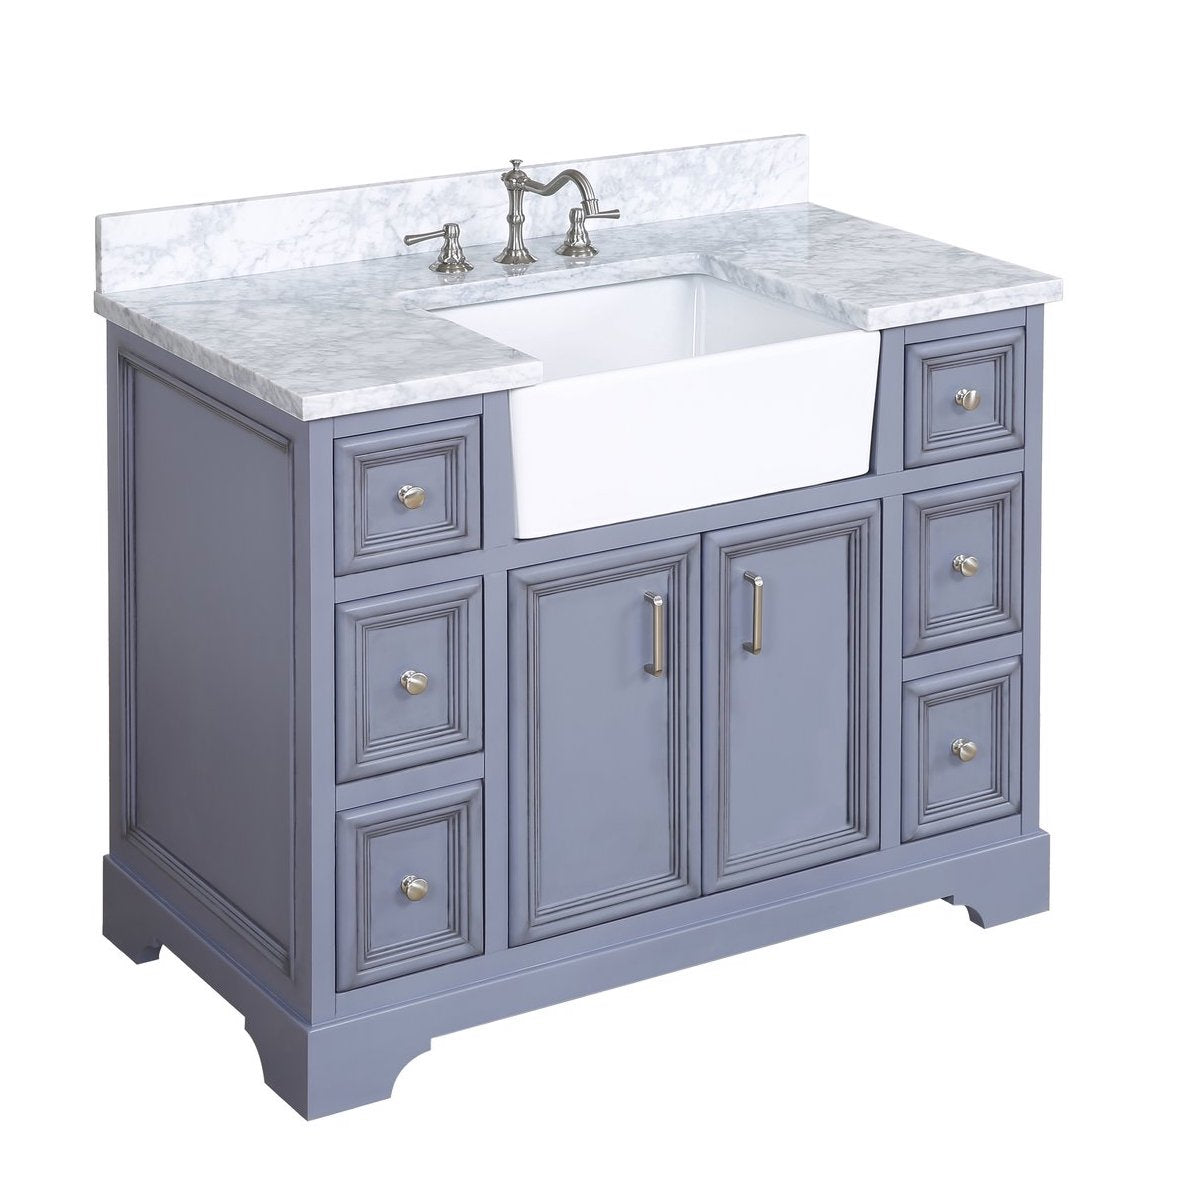 Farmhouse Rustic Bathroom Vanities Free Shipping Kitchenbathcollection